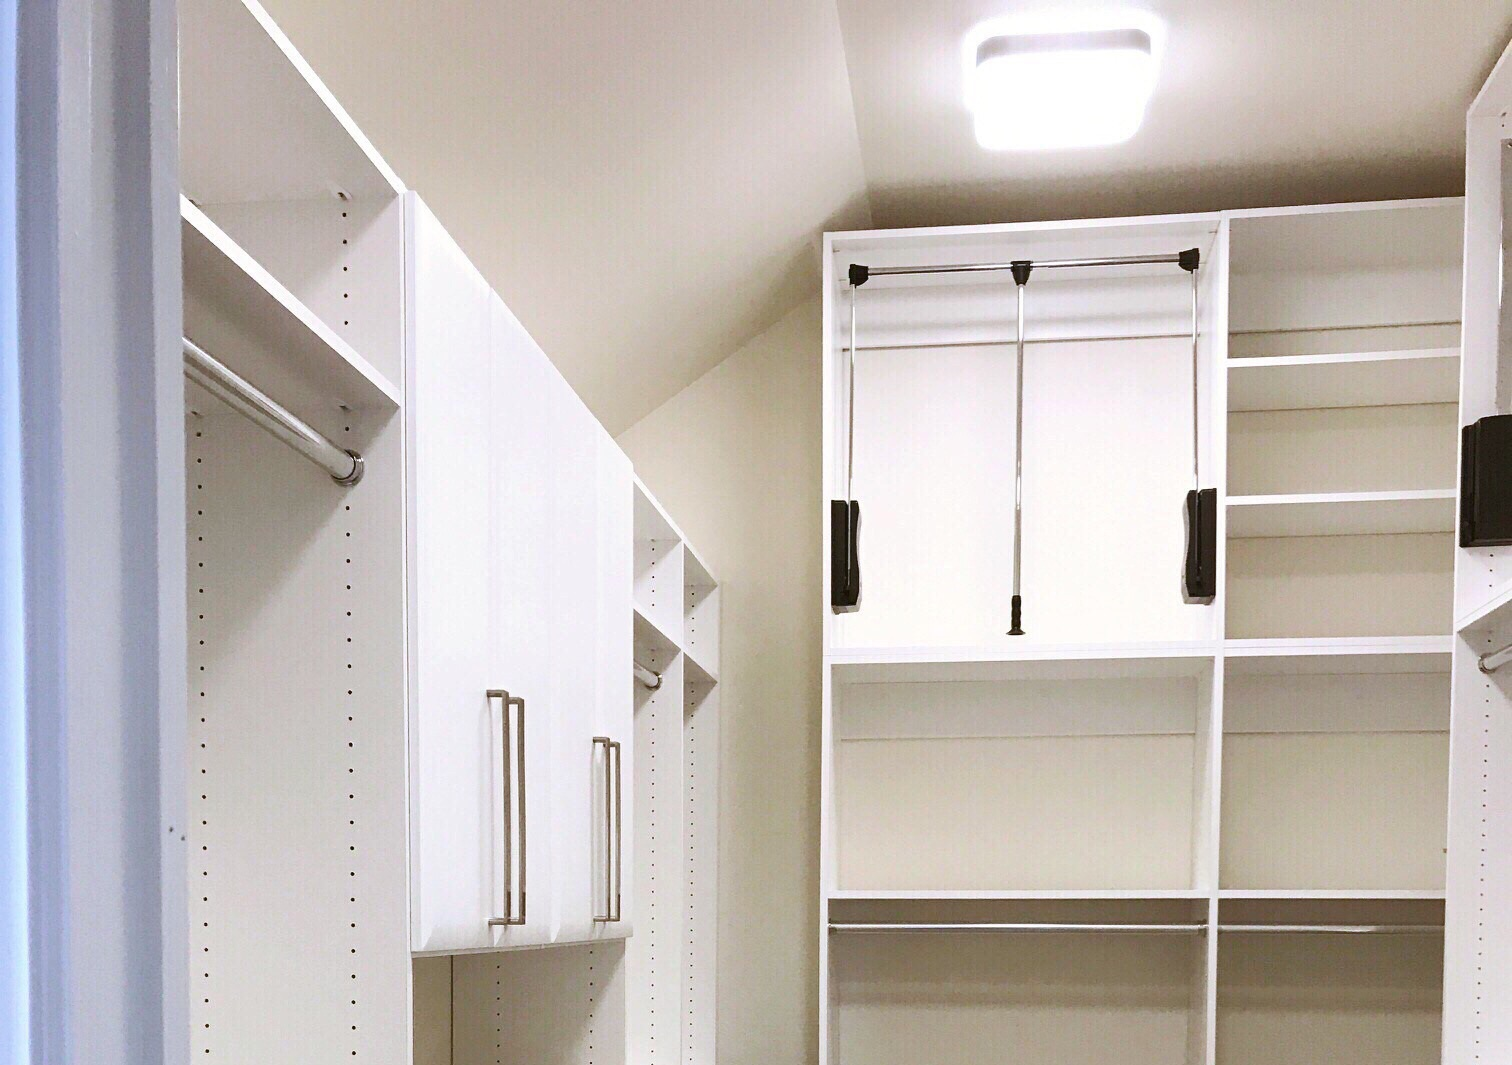 Eliminate chaos and live better with custom closet solutions by Closets of Tulsa.  Call now  for your FREE consultation and 3-D closet design:  918.609.0214